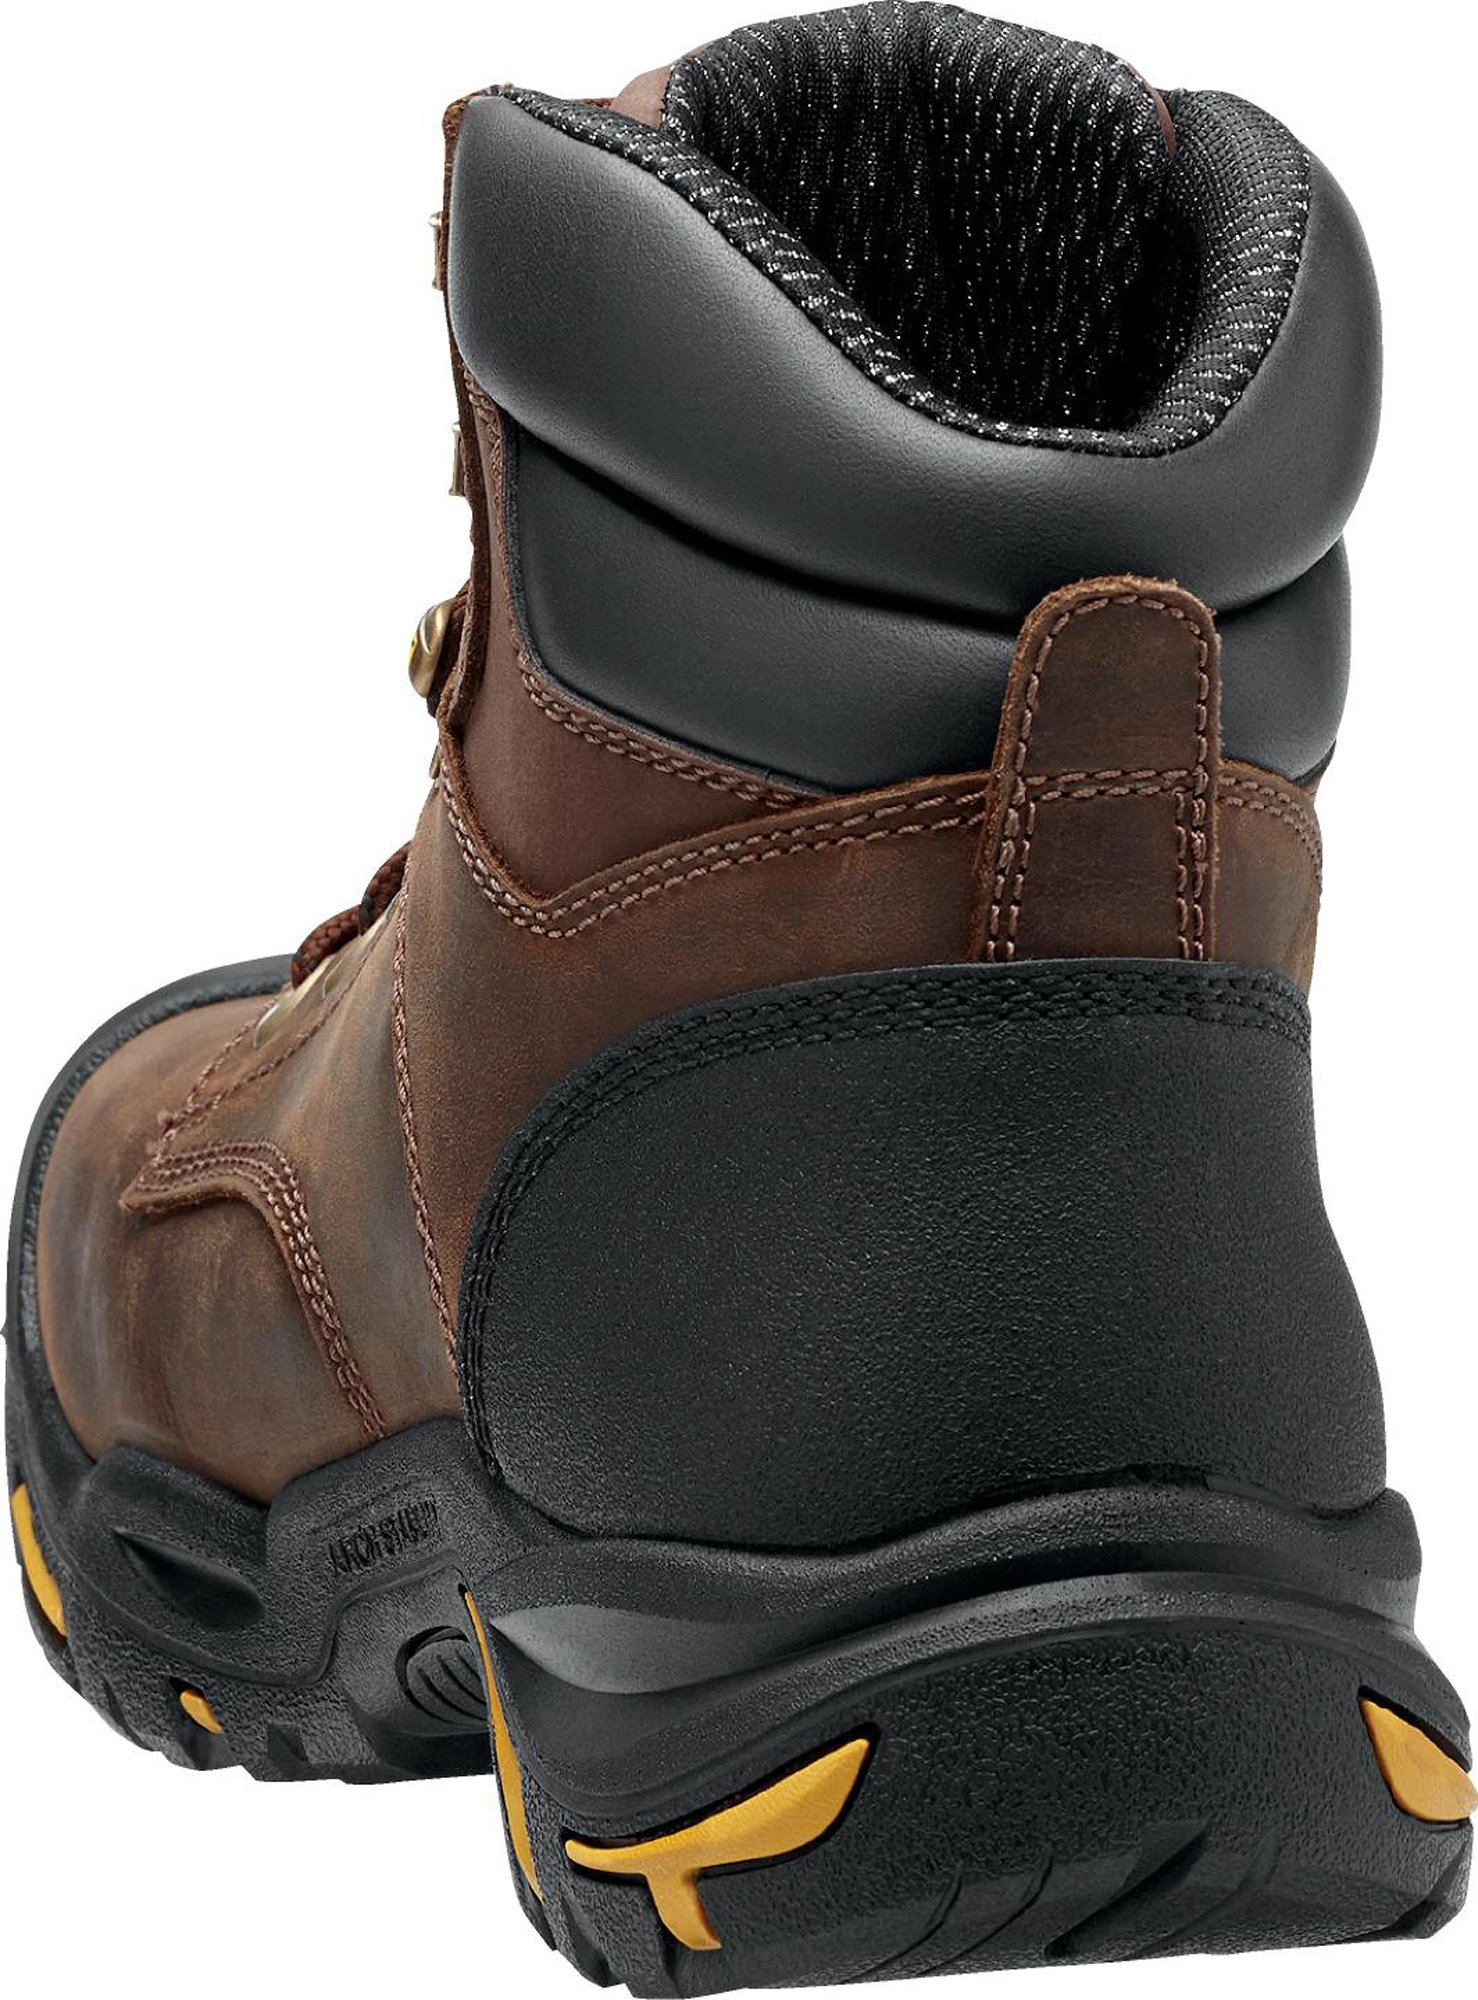 KEEN Utility MT Vernon 6'' Waterproof (Steel Toe), Men's Work Boot, Cascade Brown, 15 EE by KEEN Utility (Image #7)